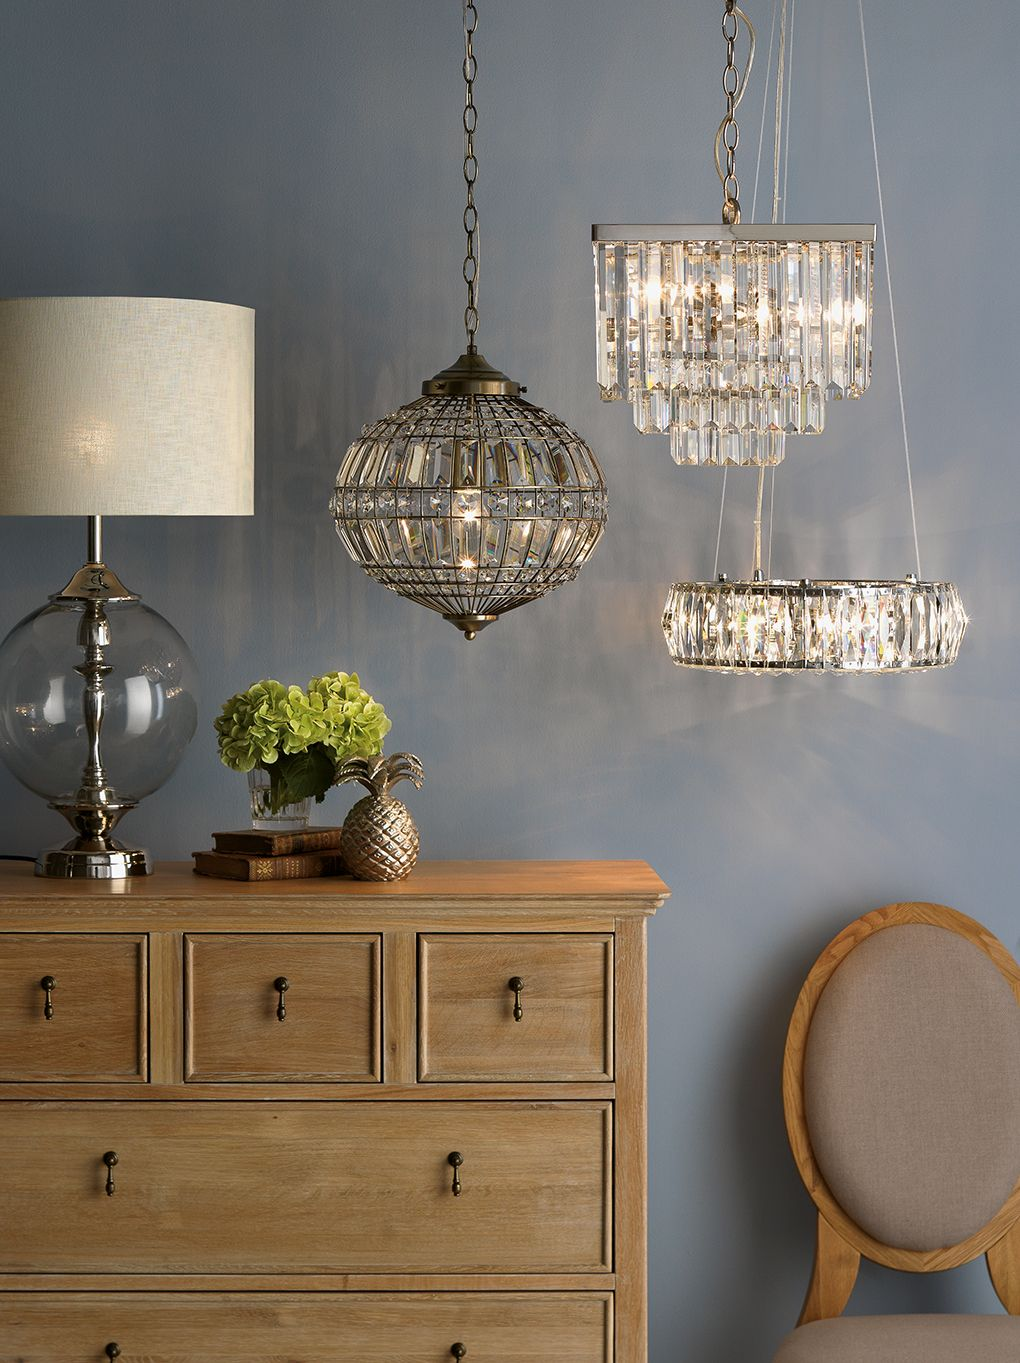 Enhance The Atmosphere In Every Room With Clever Lighting That Lifts,  Brightens And Completes The